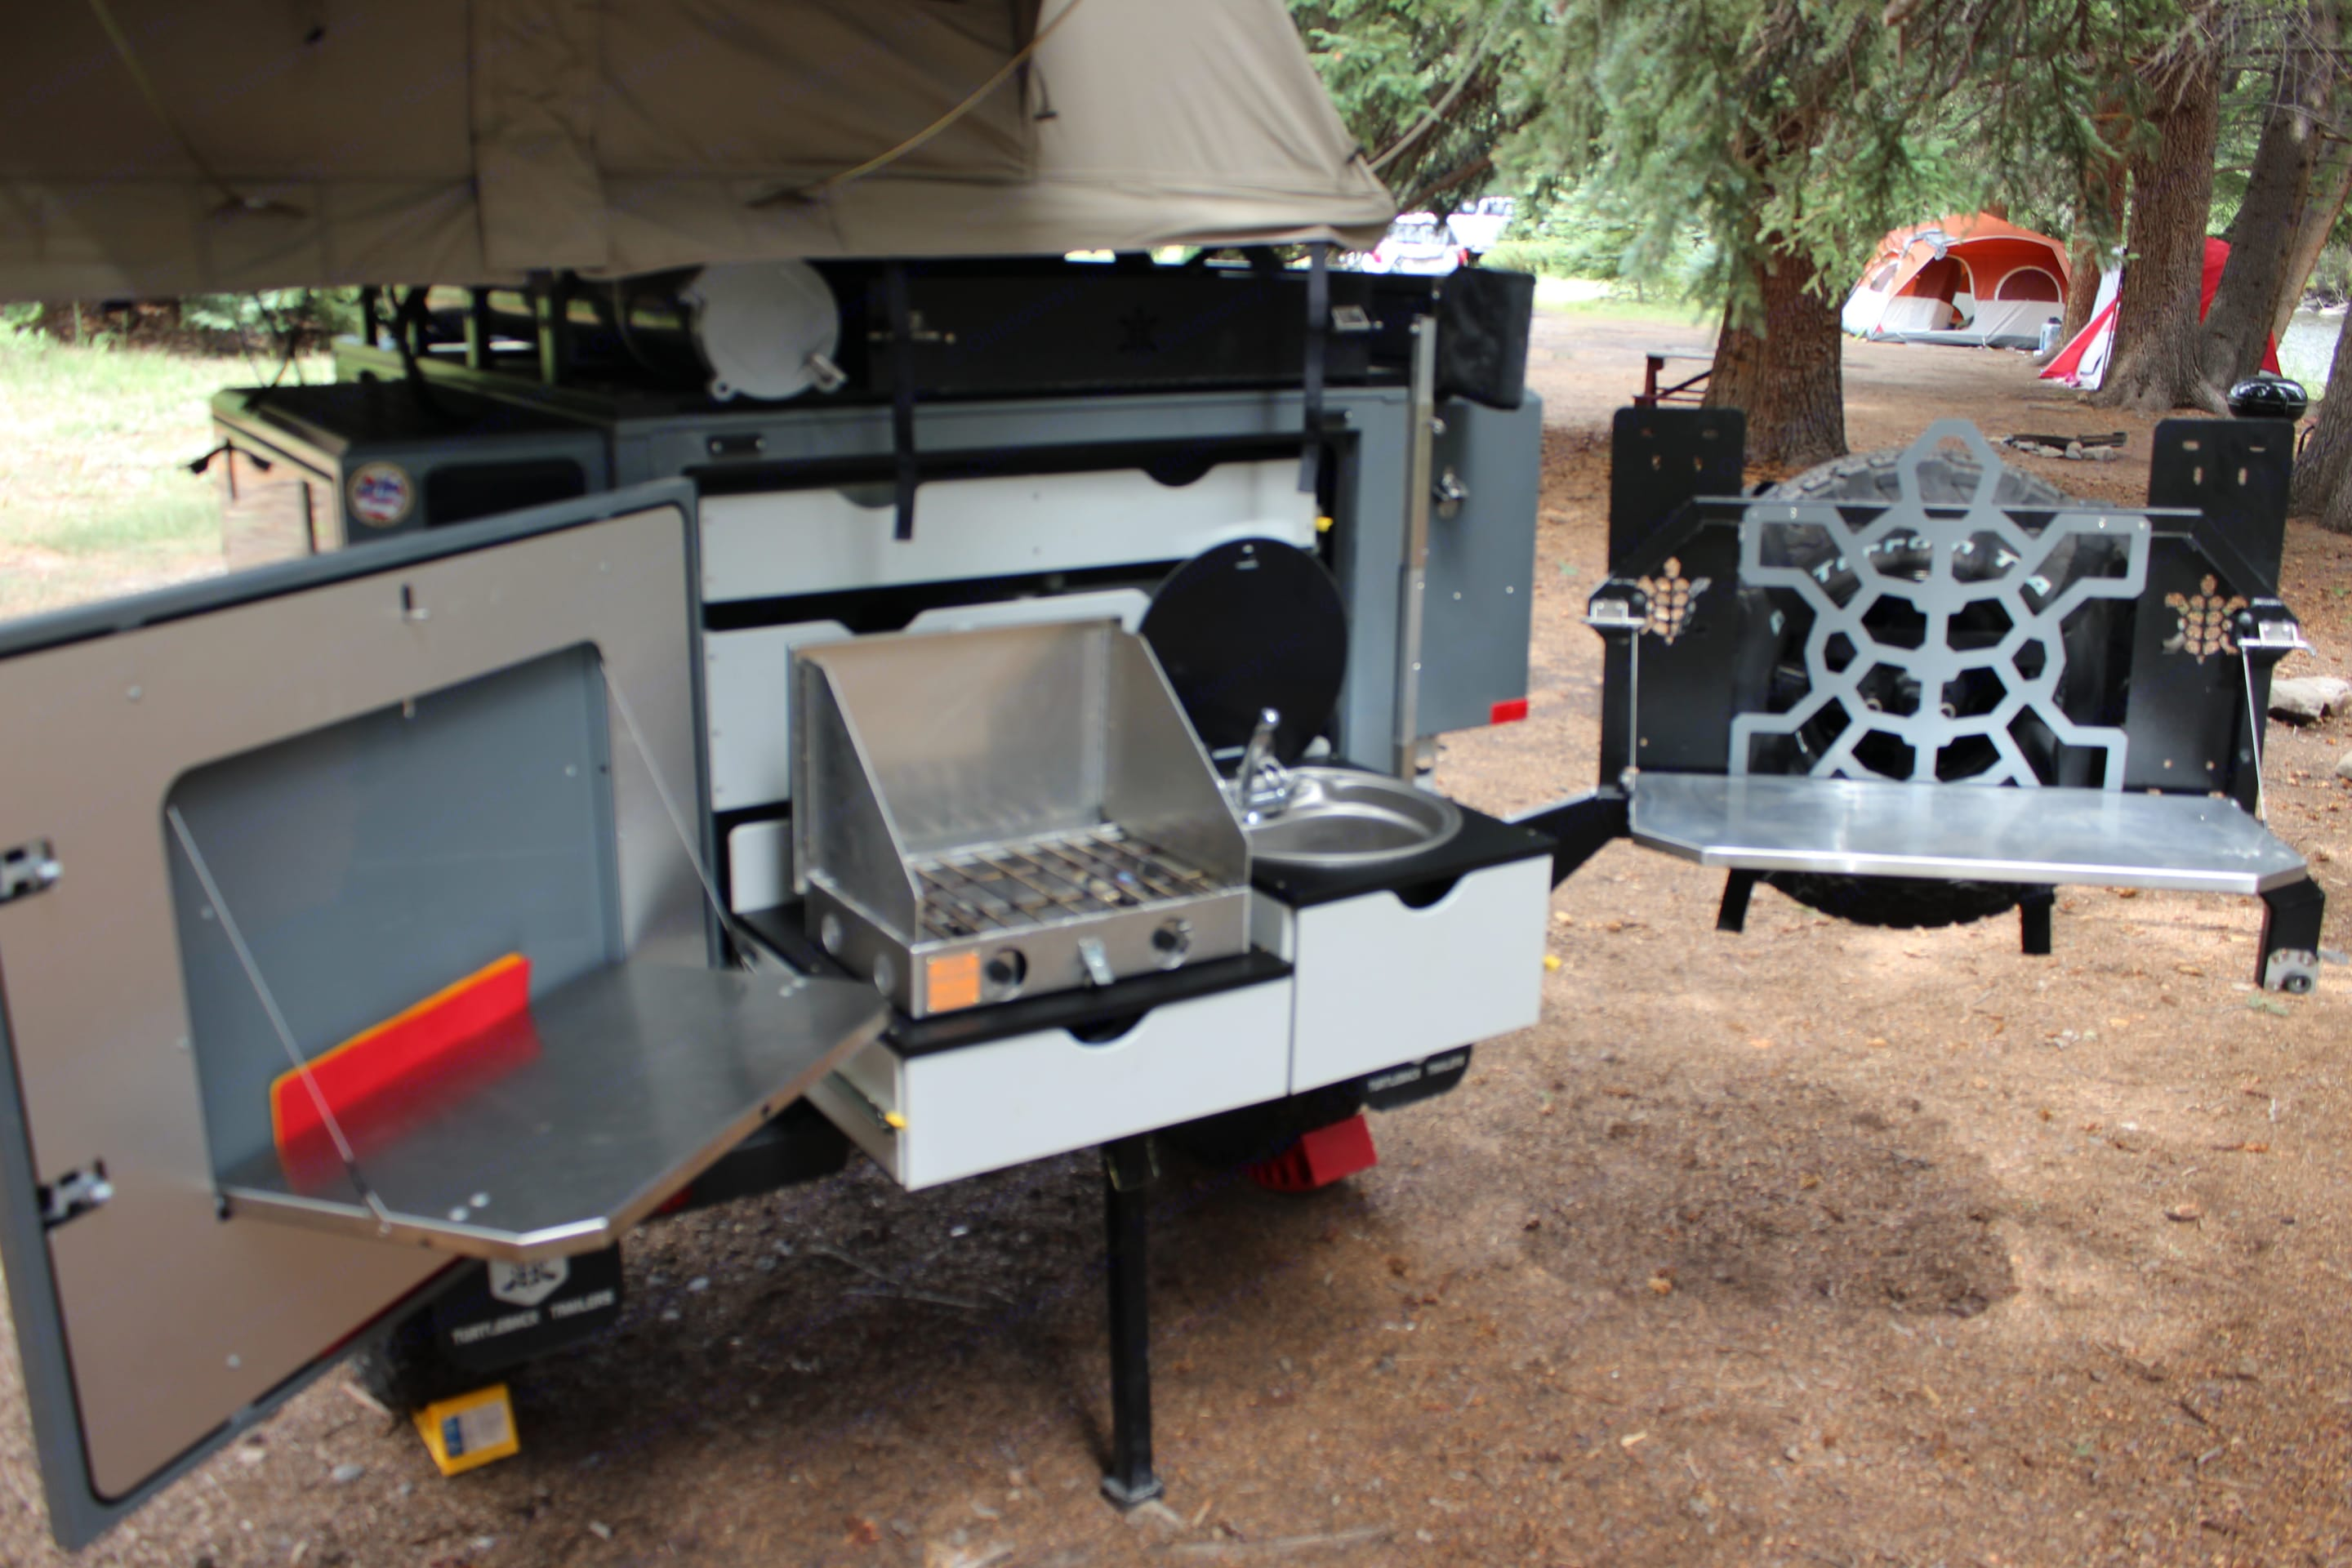 Turtleback Trailers Expedition Offgrid 2019